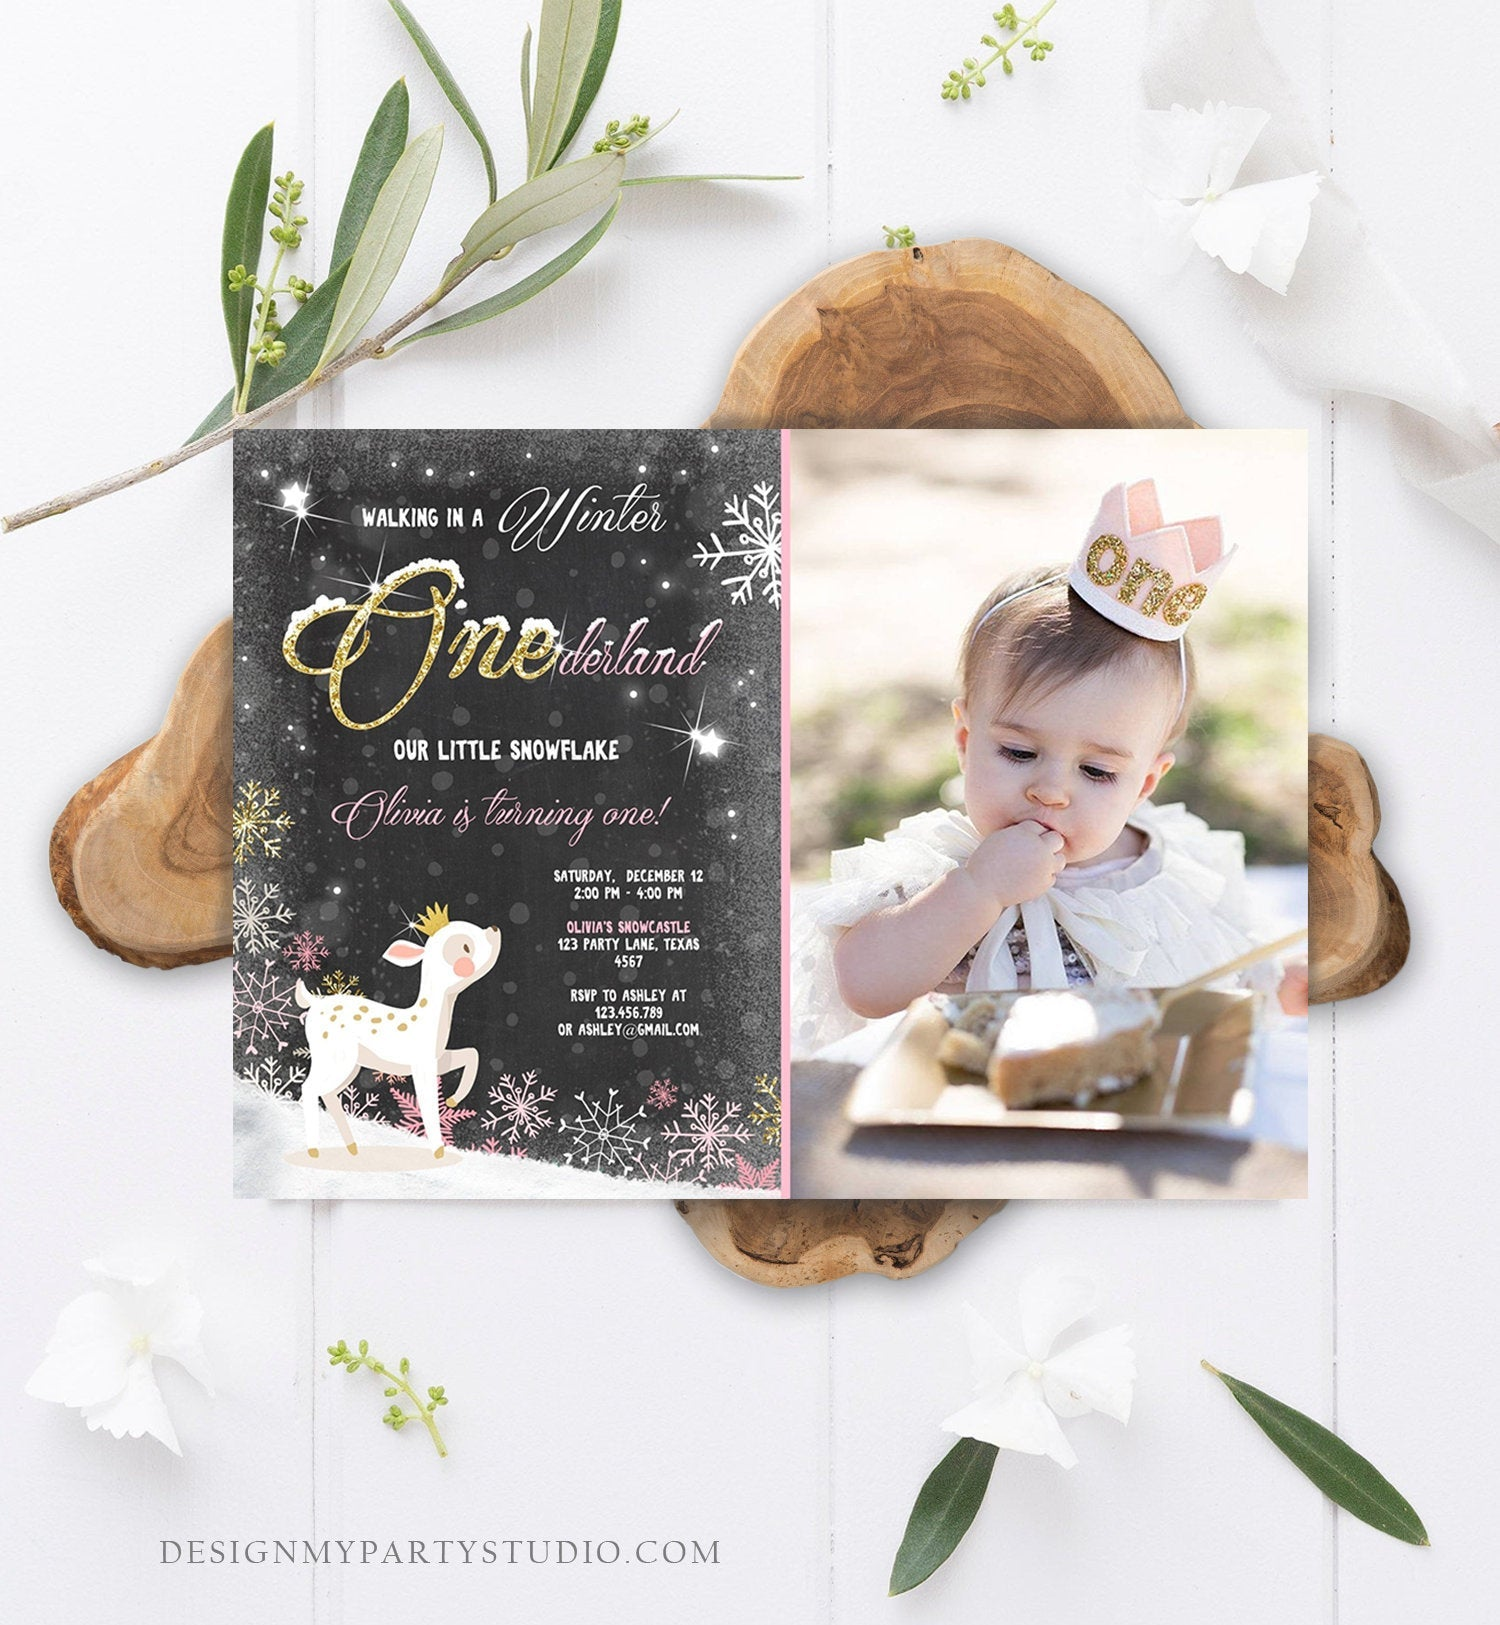 Editable Winter ONEderland Birthday Invitation First Birthday Snowflake Girl Pink Gold Deer Princess Crown Printable Template Corjl 0034